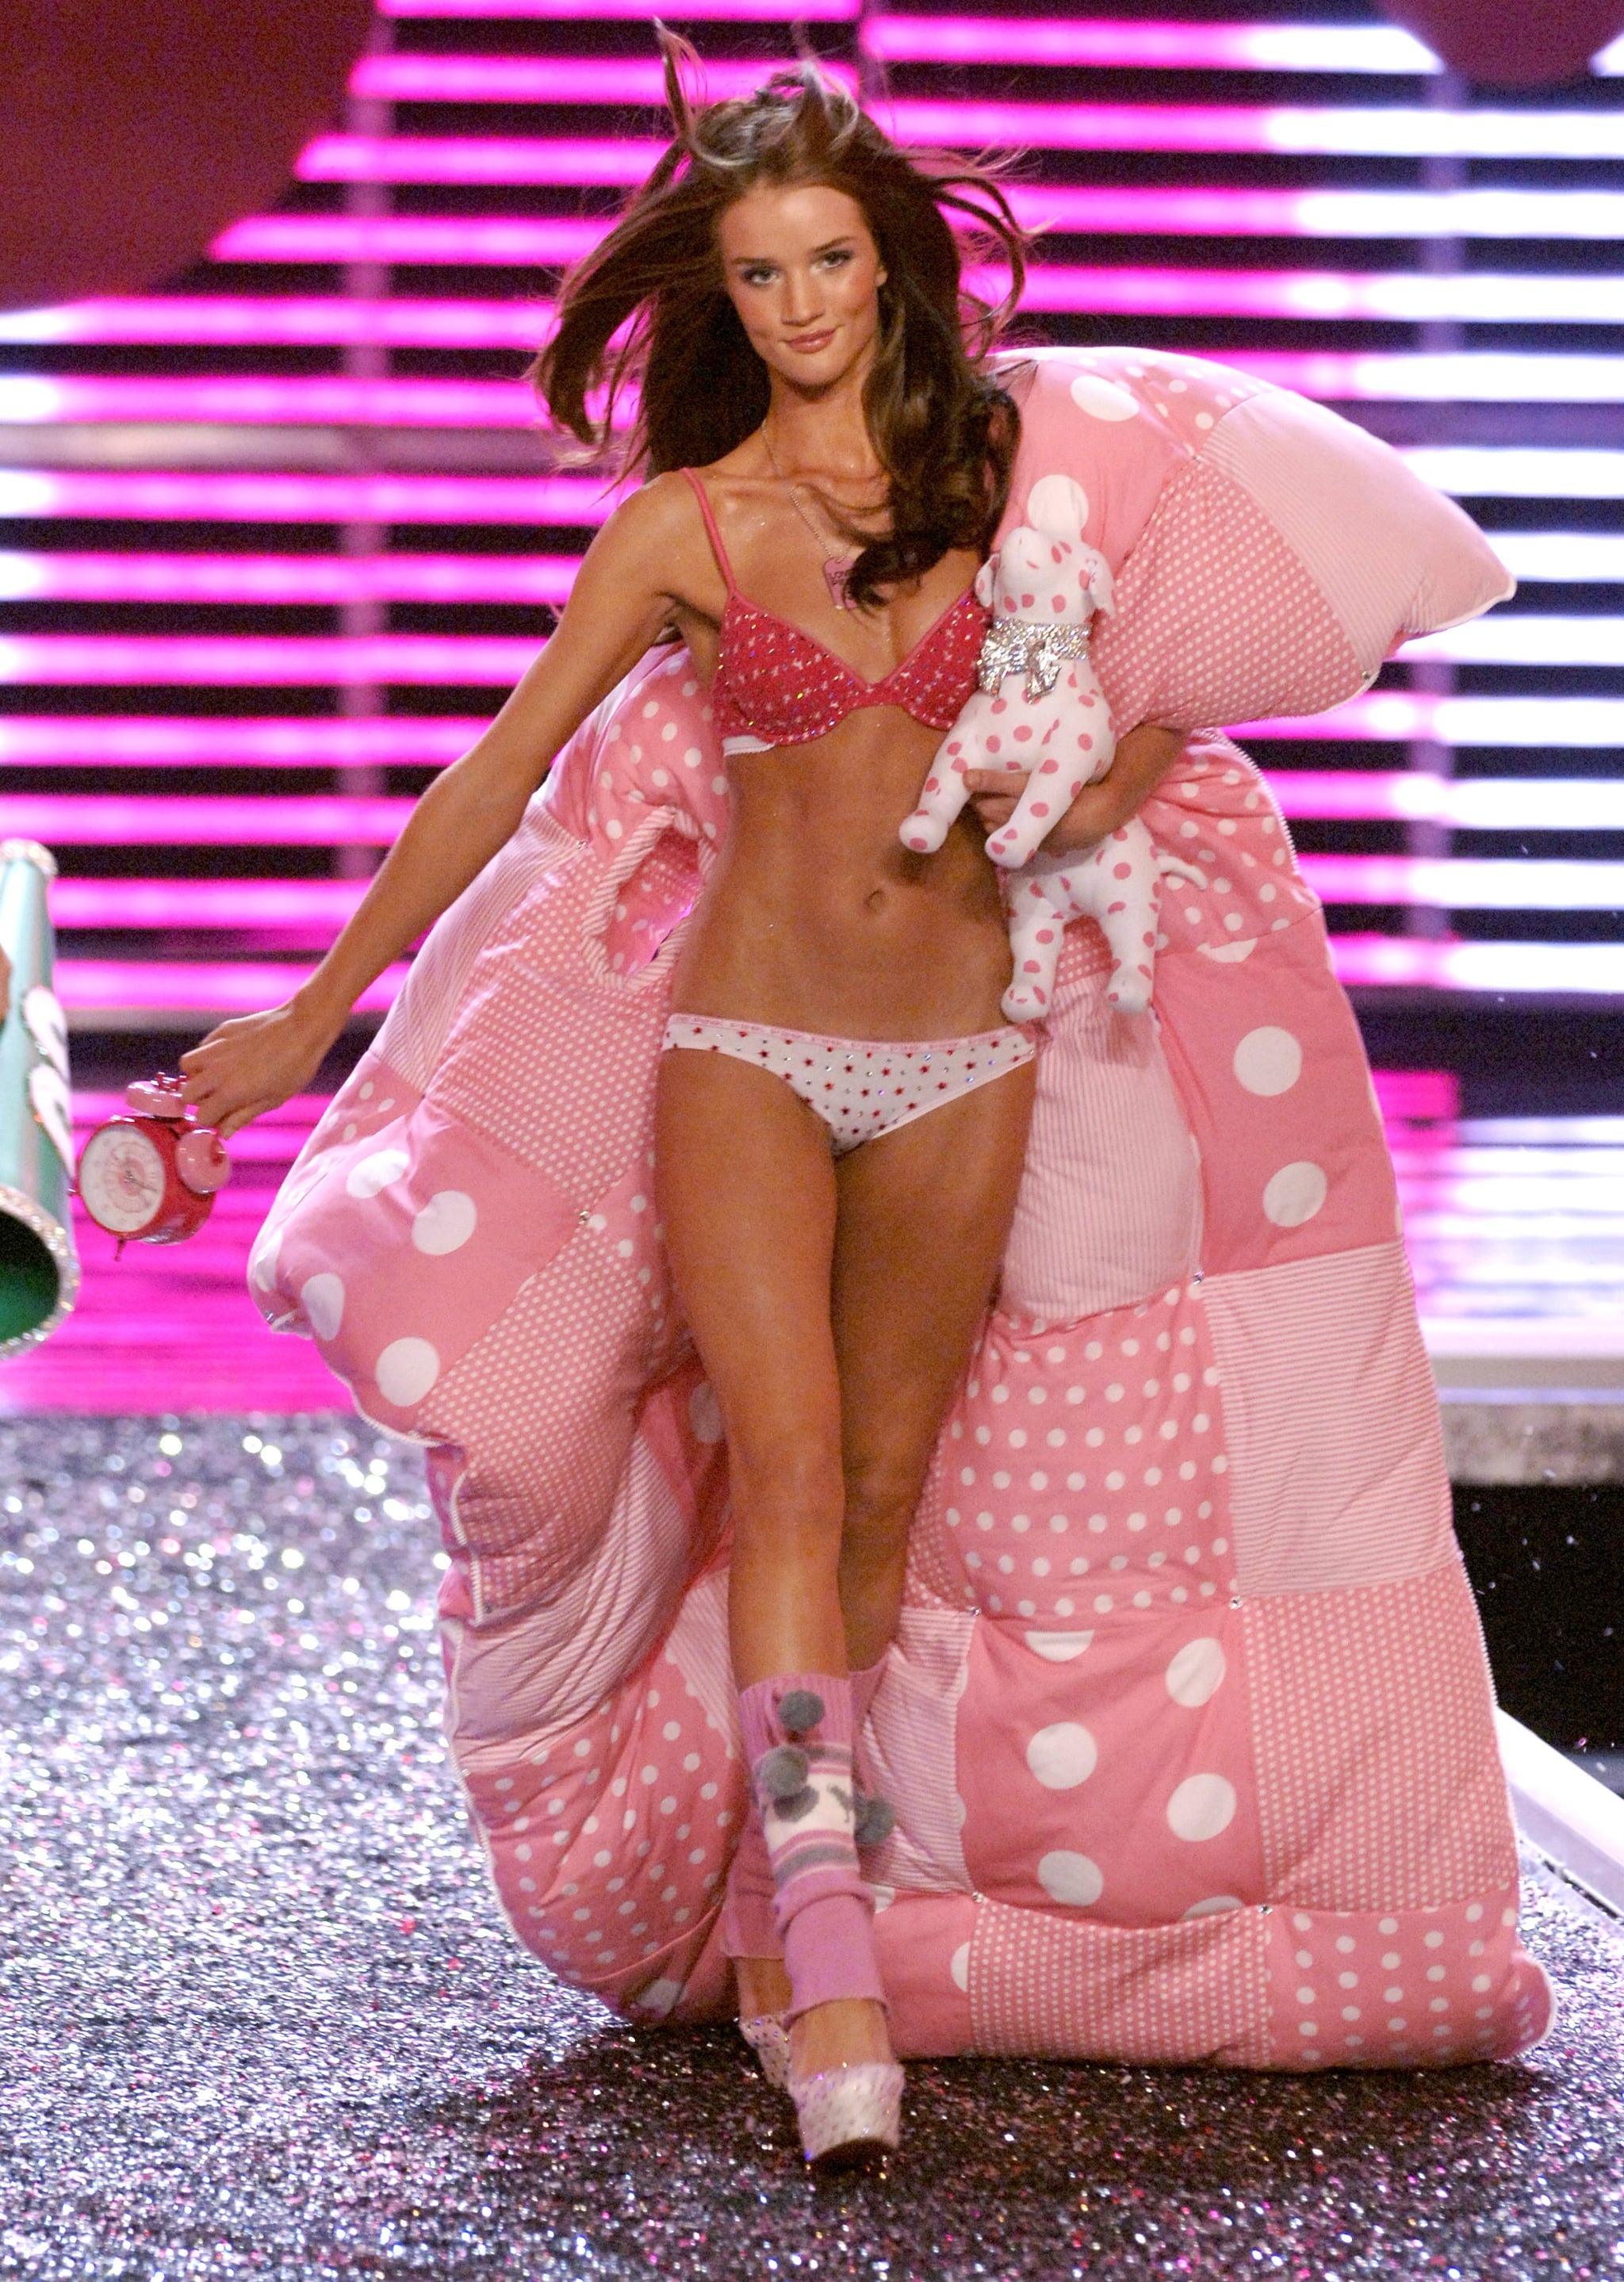 Rosie Huntington-Whiteley walked the runway in pink polka dots and a cozy sleeping bag in 2006.